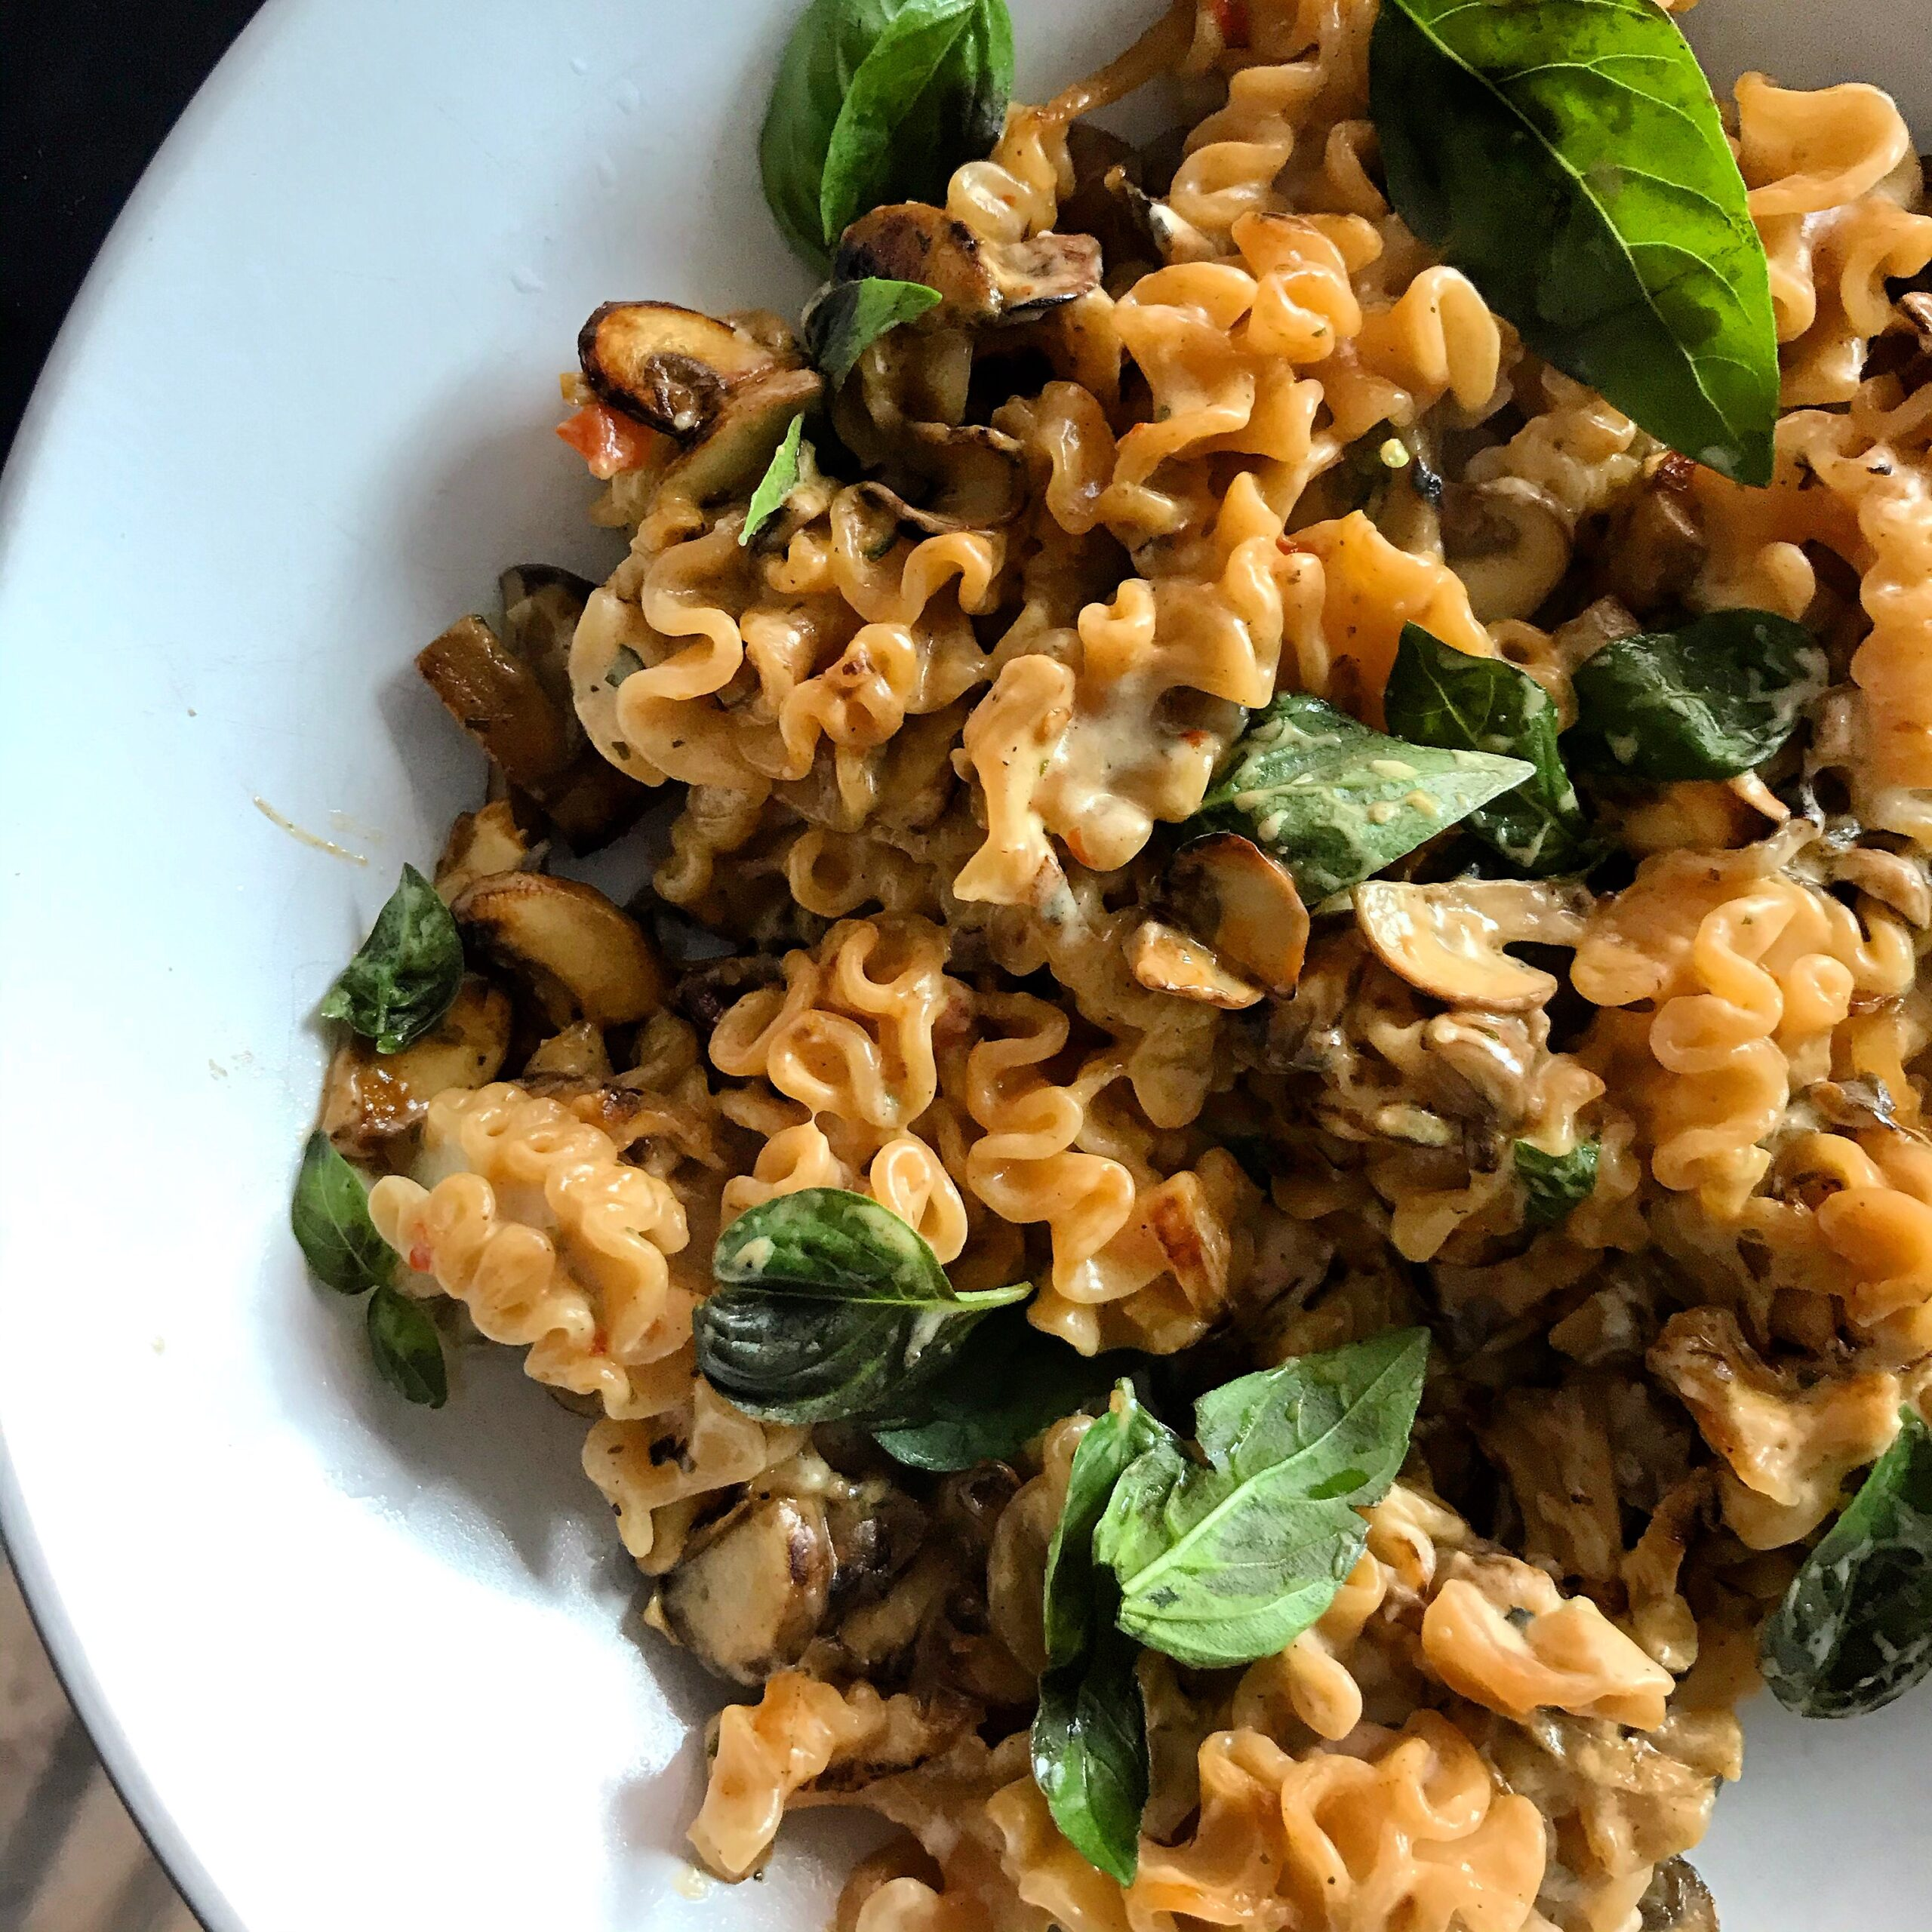 CREAMY RED LENTIL PASTA WITH MUSHROOMS & BASIL